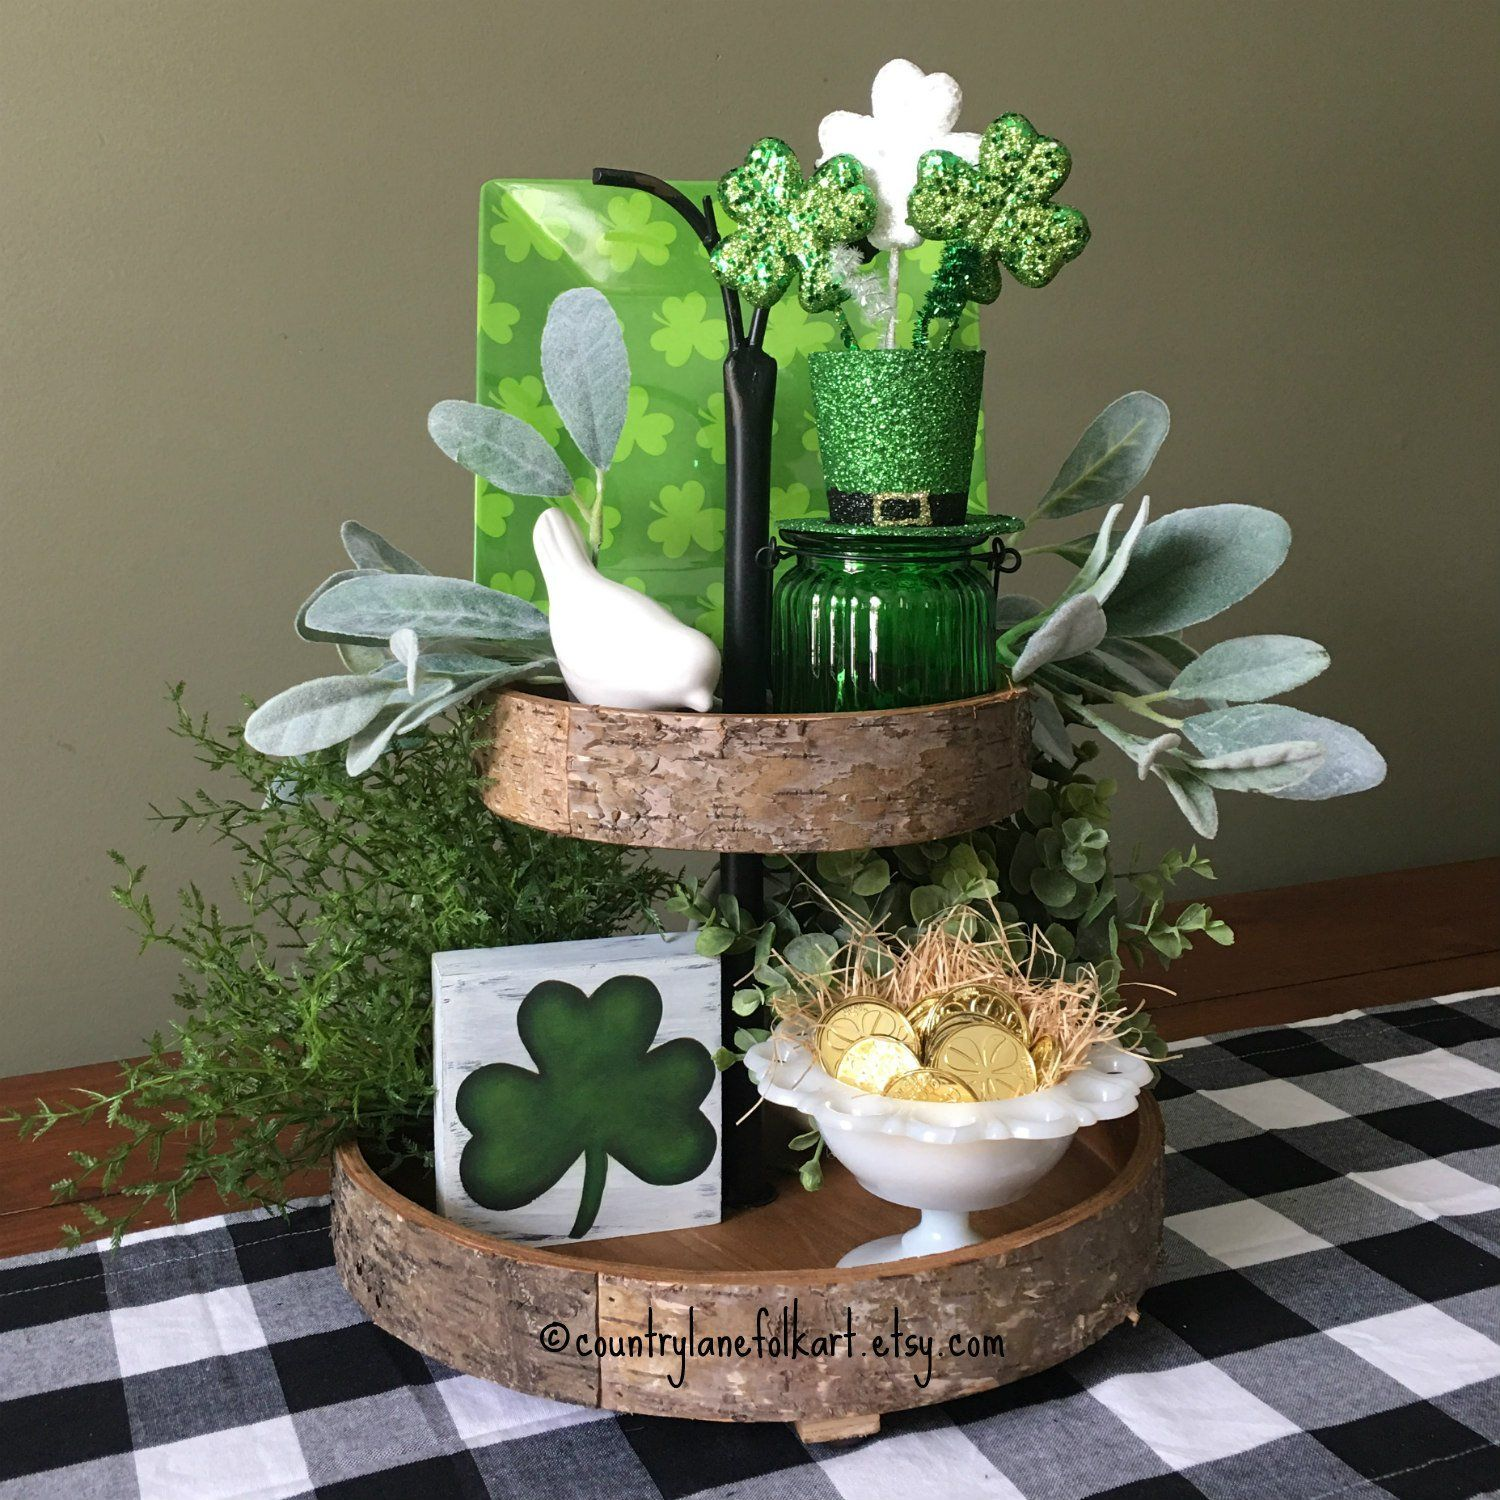 Shamrock Block Tiered Tray Decor, St. Patricks Day Decor